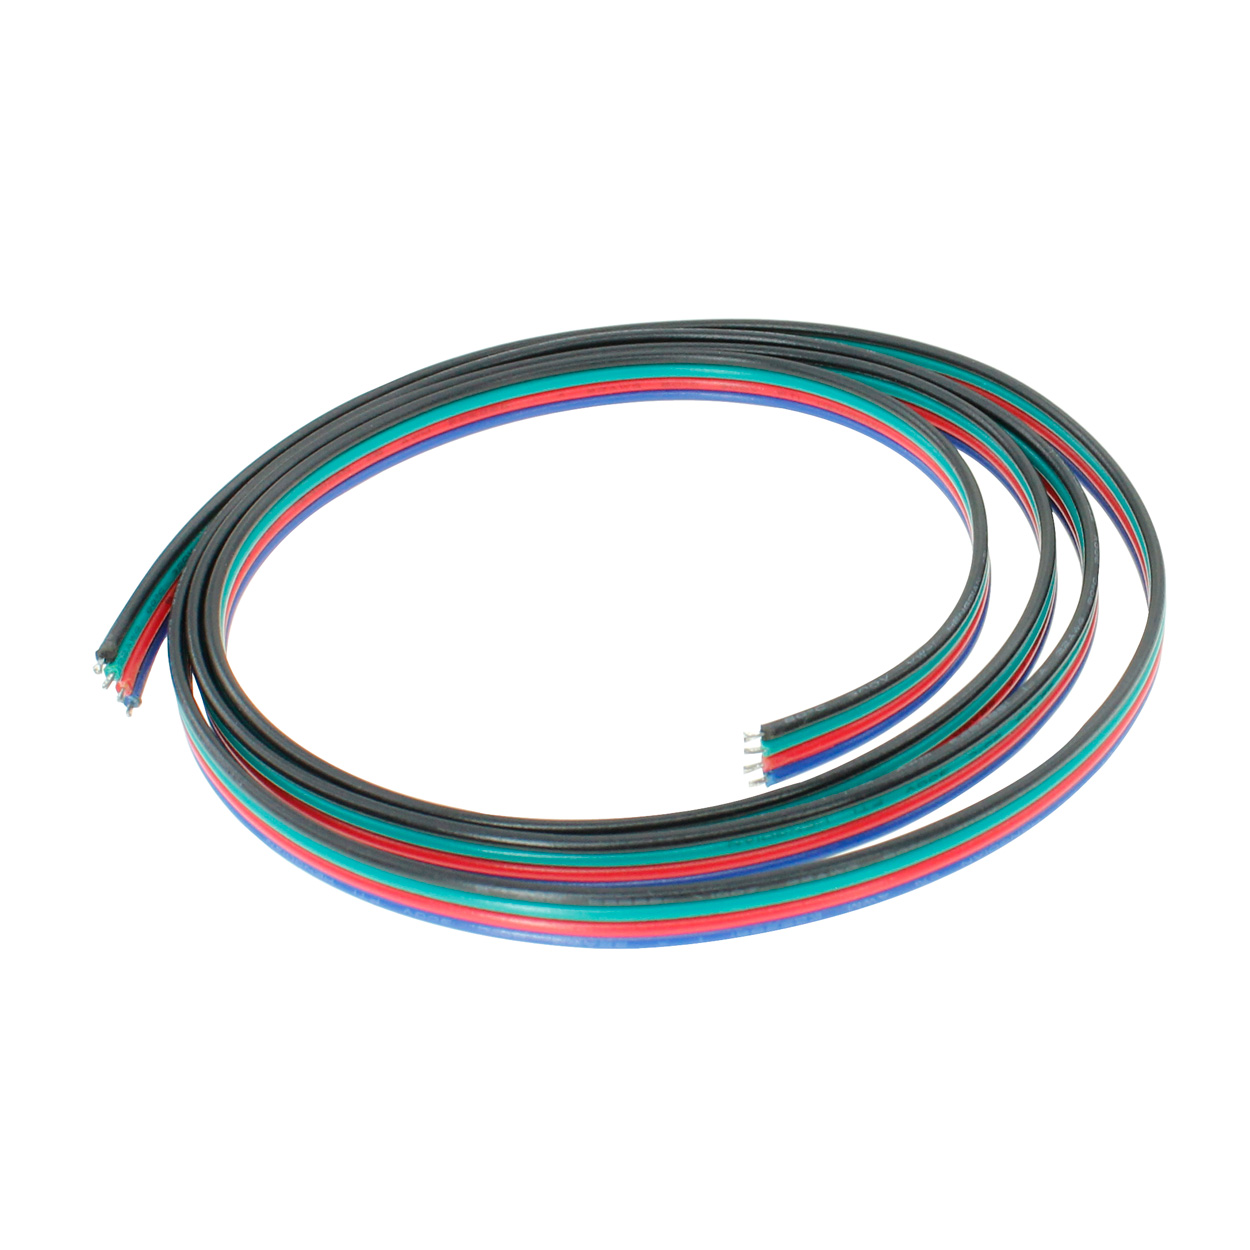 4 Wire 18awg Power Cable For Rgb Led Light Strips Per Foot Wiring